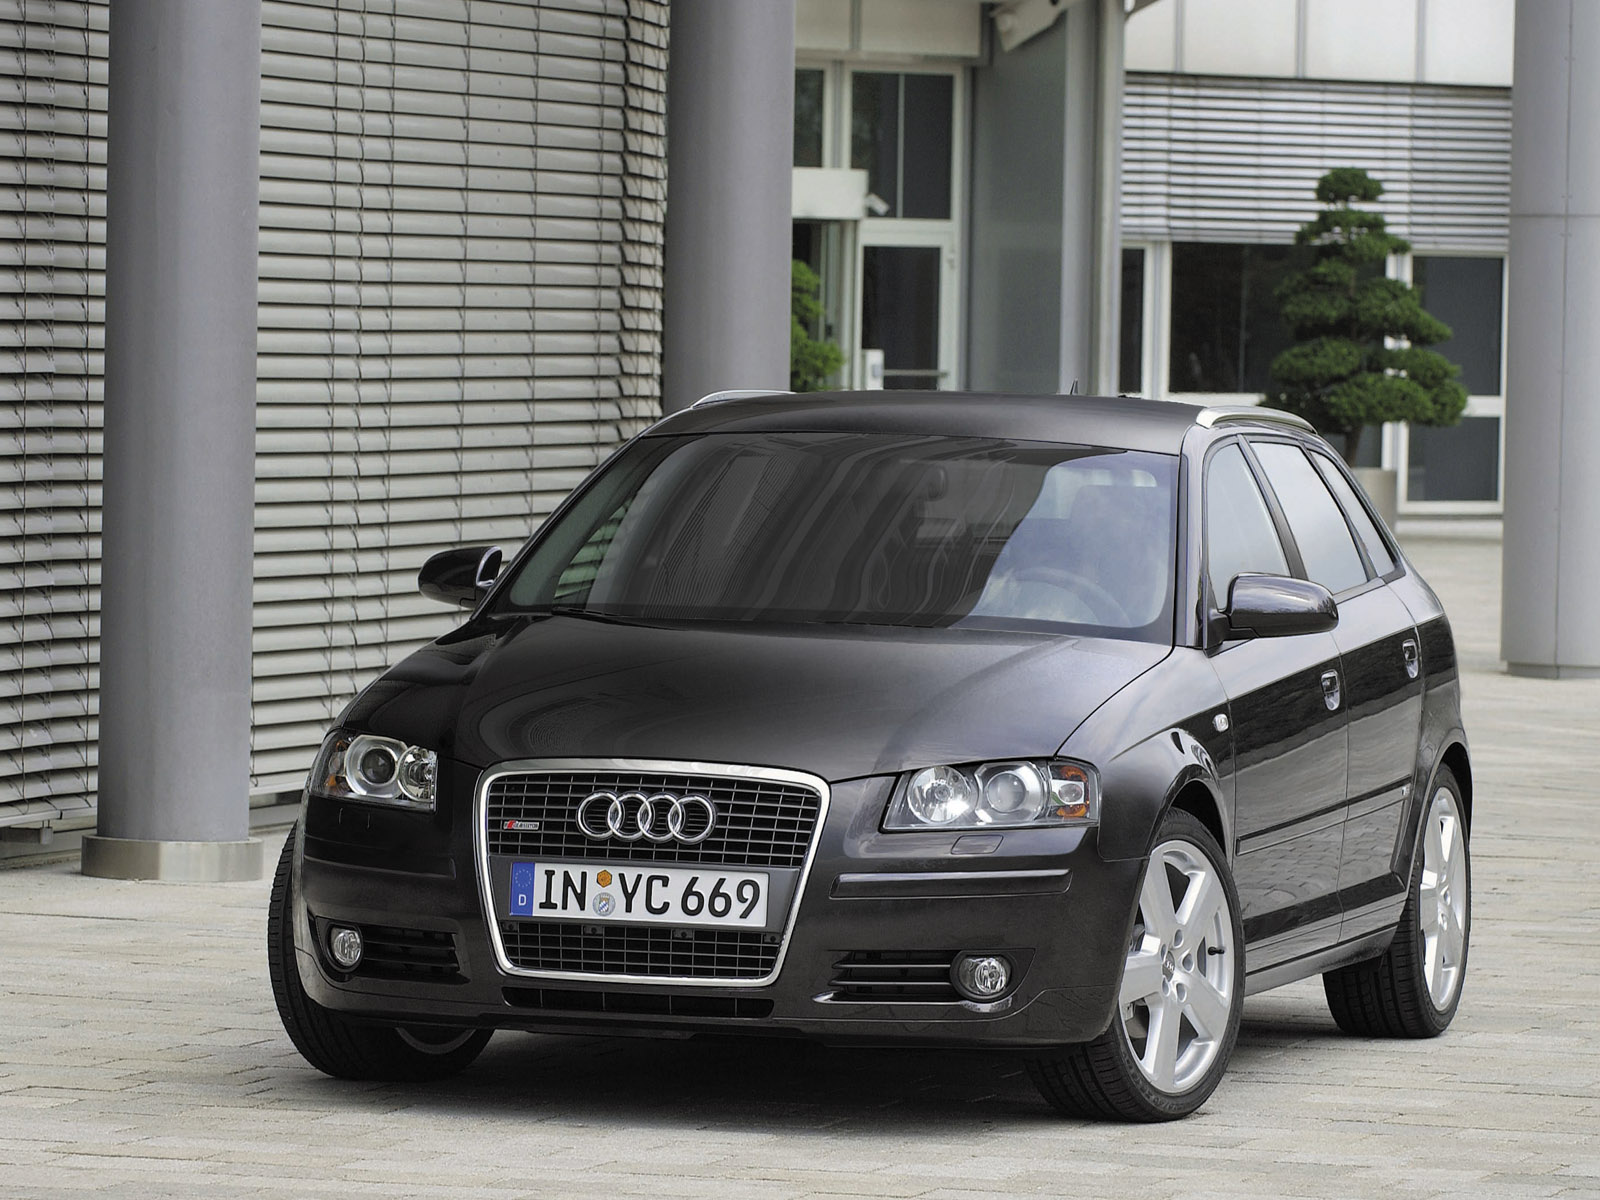 audi a3 sportback 2005 audi a3 sportback 2005 photo 01 car in pictures car photo gallery. Black Bedroom Furniture Sets. Home Design Ideas